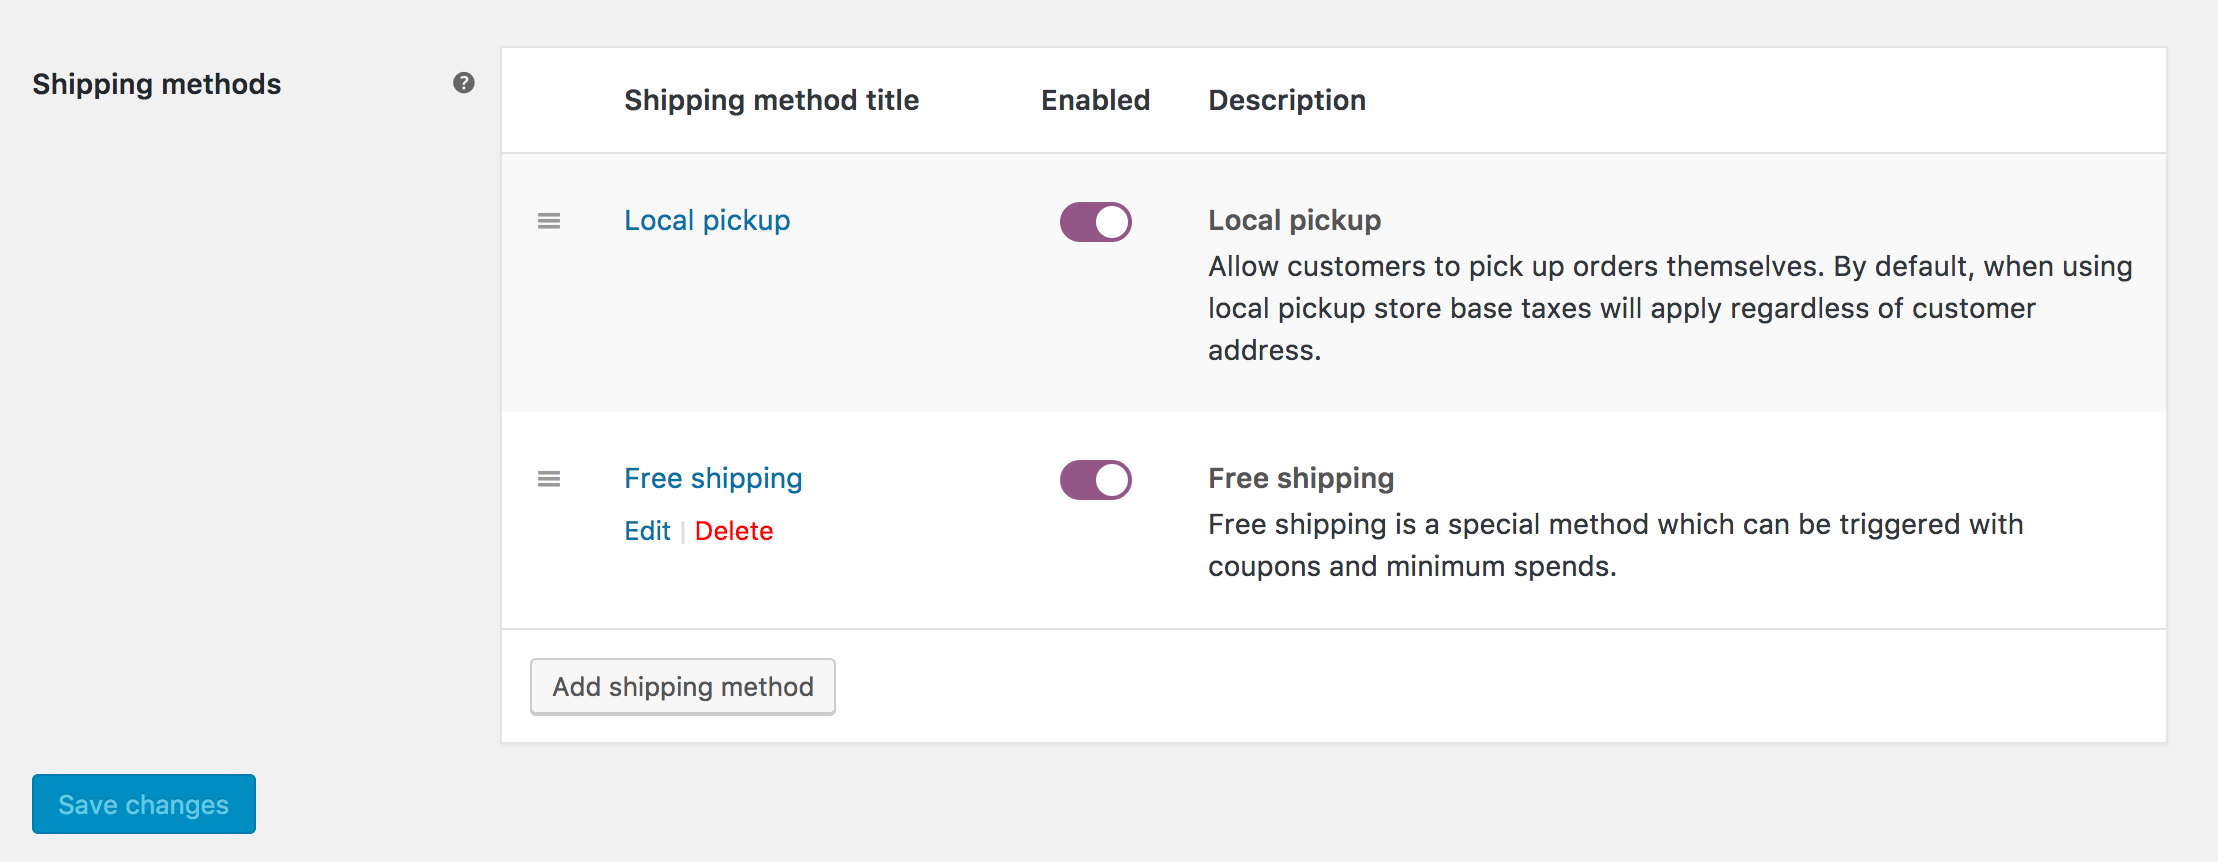 Shipping methods screen in WooCommerce